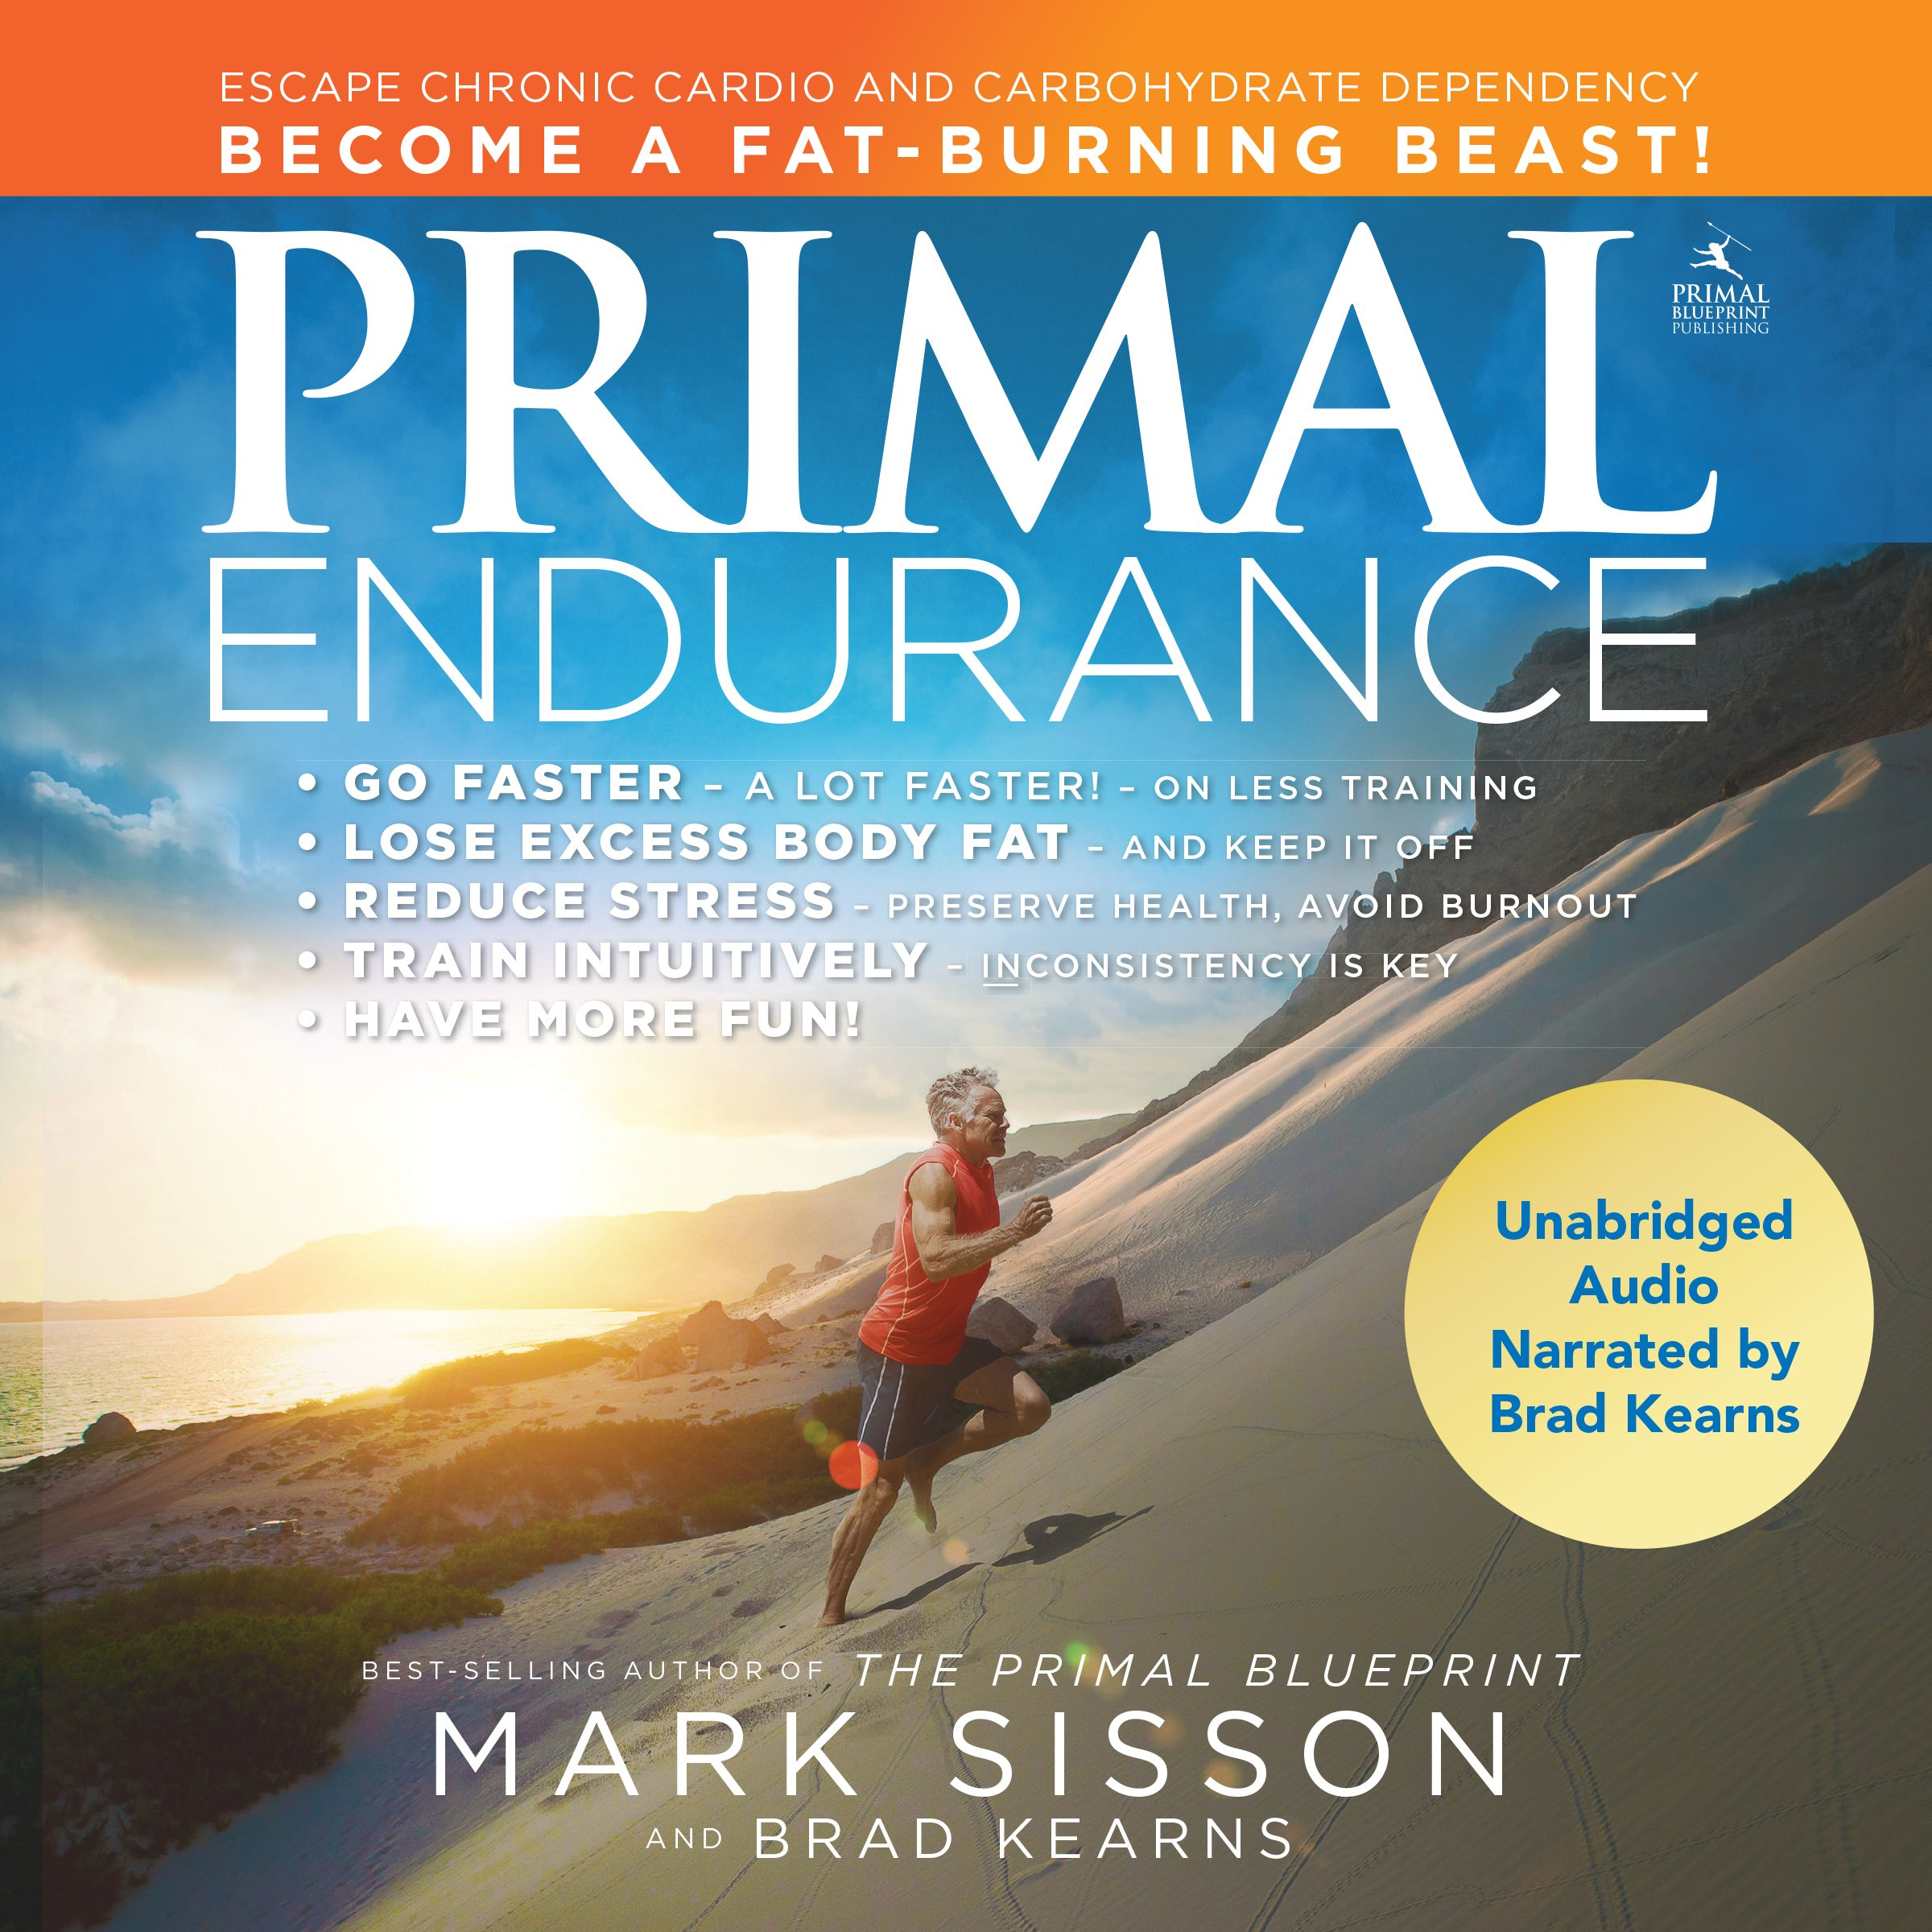 Primal Endurance: Escape Chronic Cardio and Carbohydrate Dependency, and Become a Fat-Burning Beast!